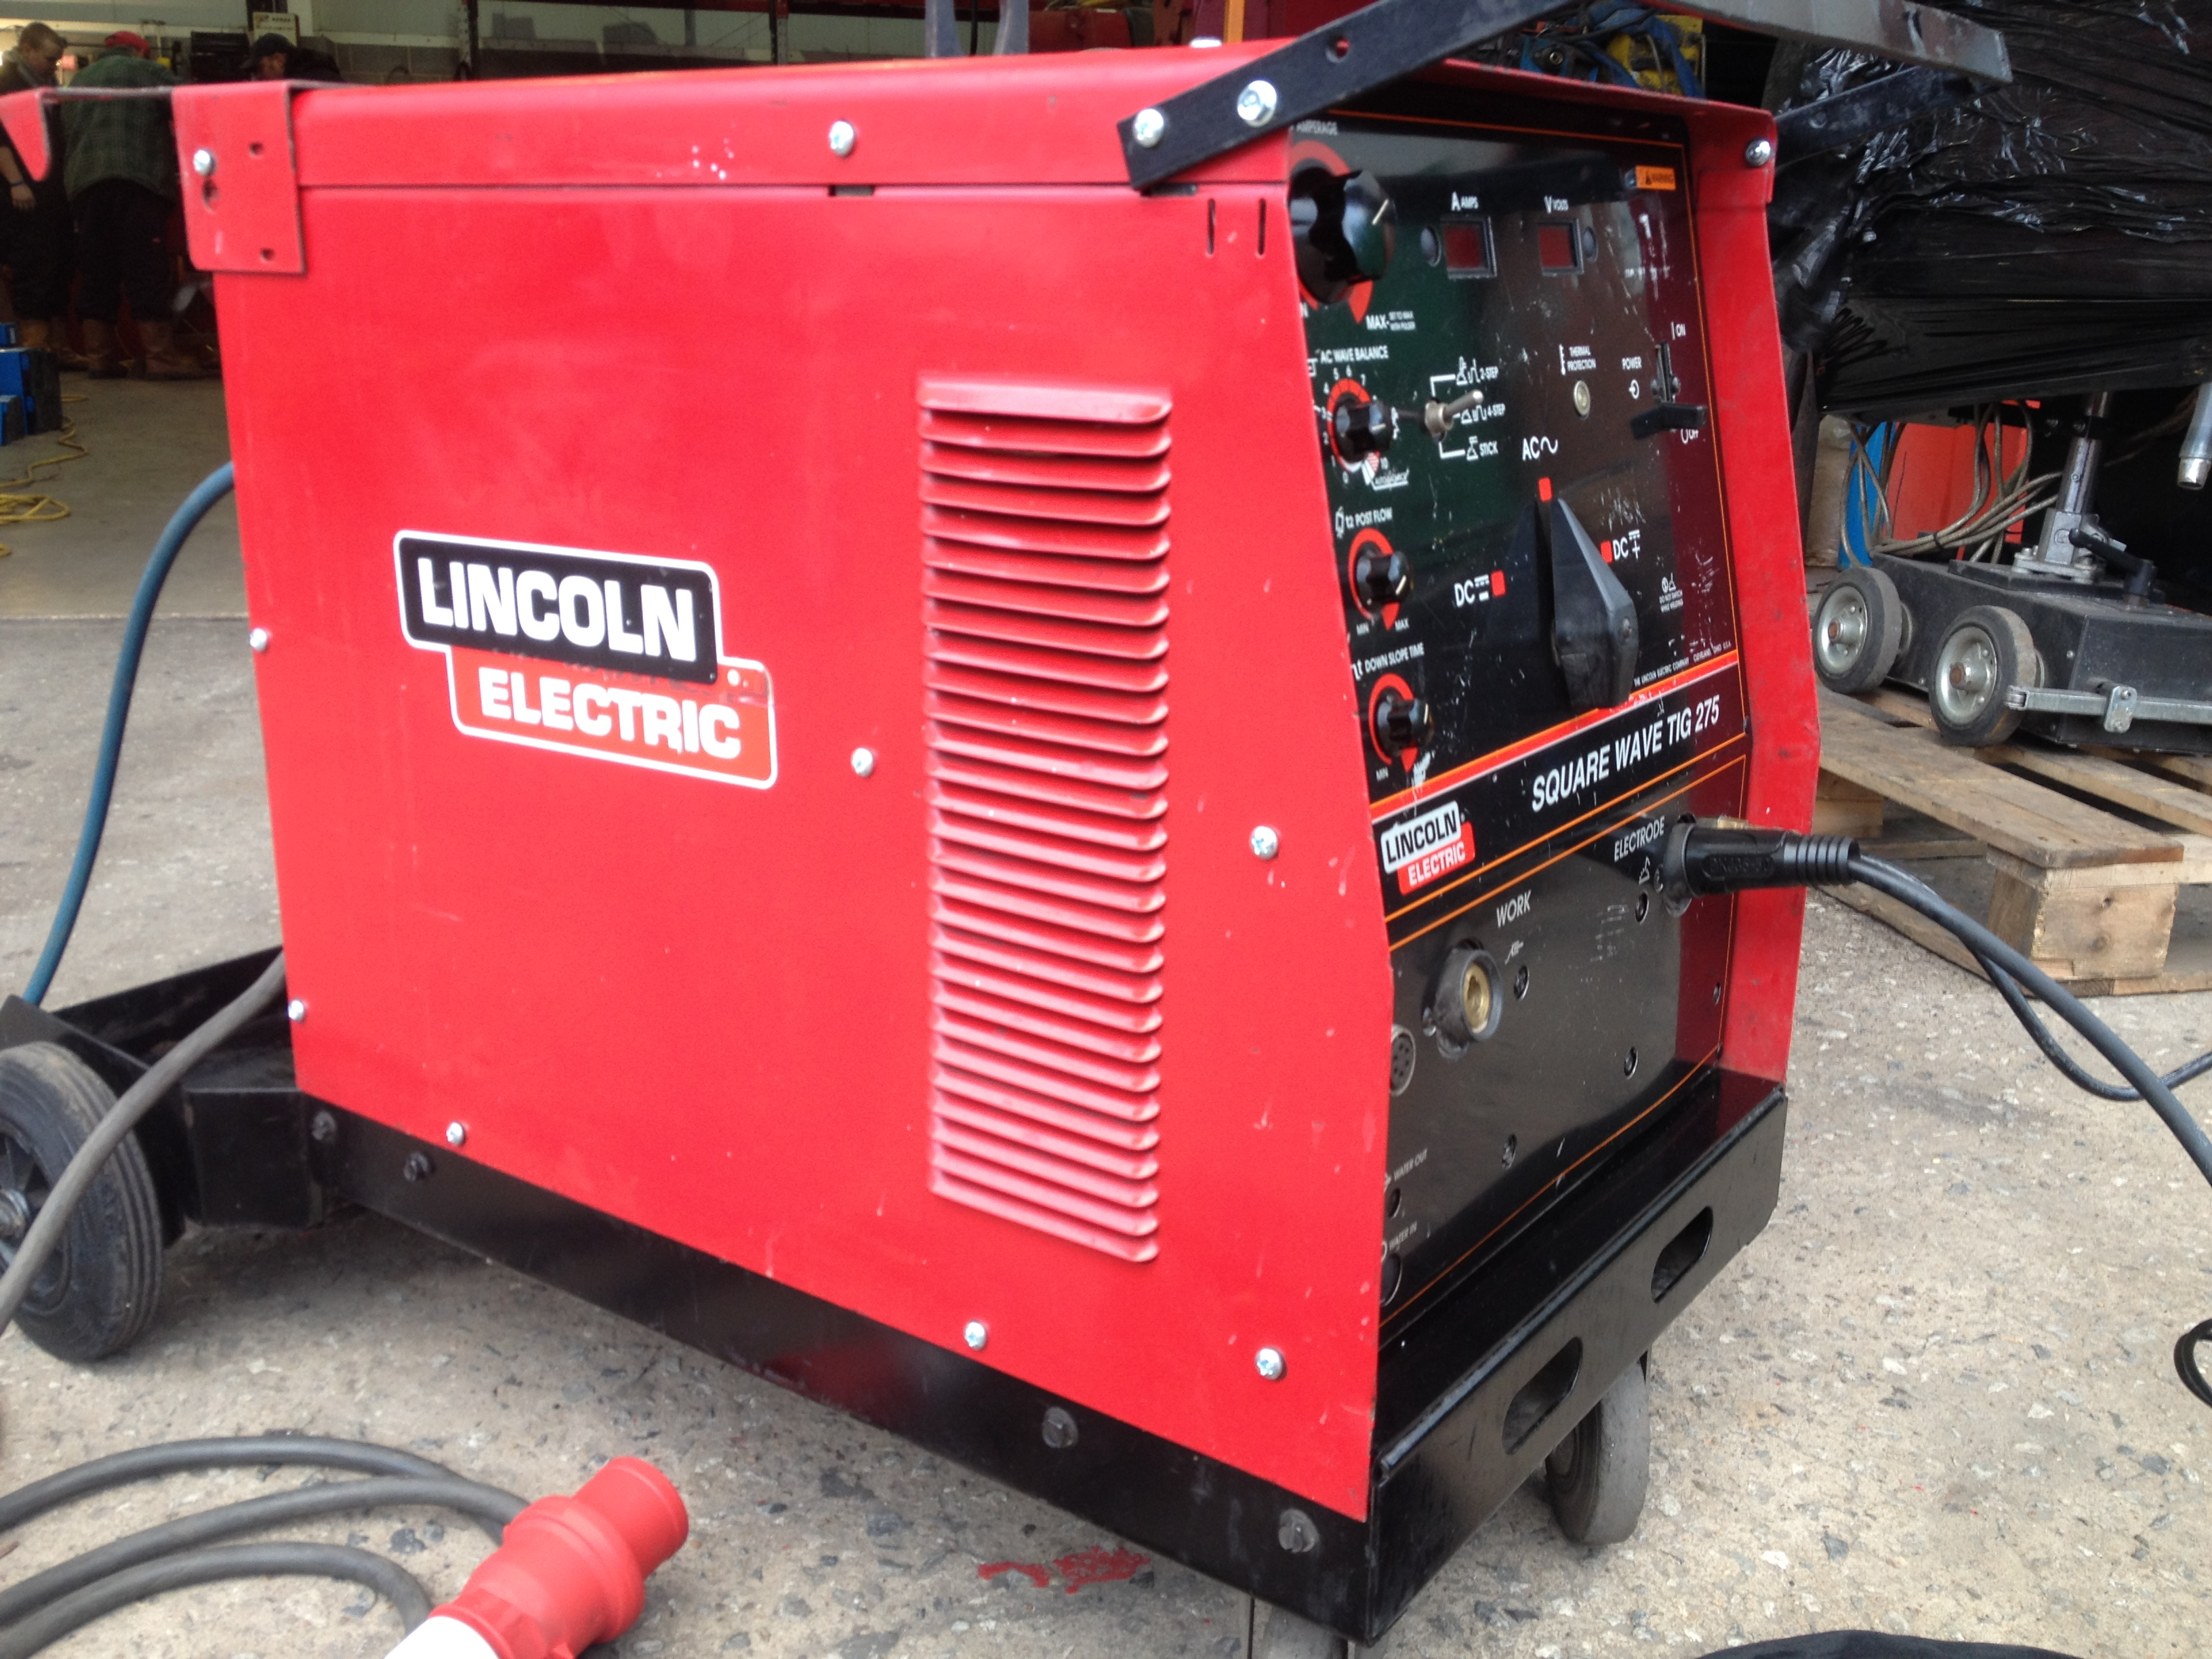 Lincoln Electric Square Wave Tig 275 Ac Dc Welding Machine Electrical Diagram Sqaure Acdc 2